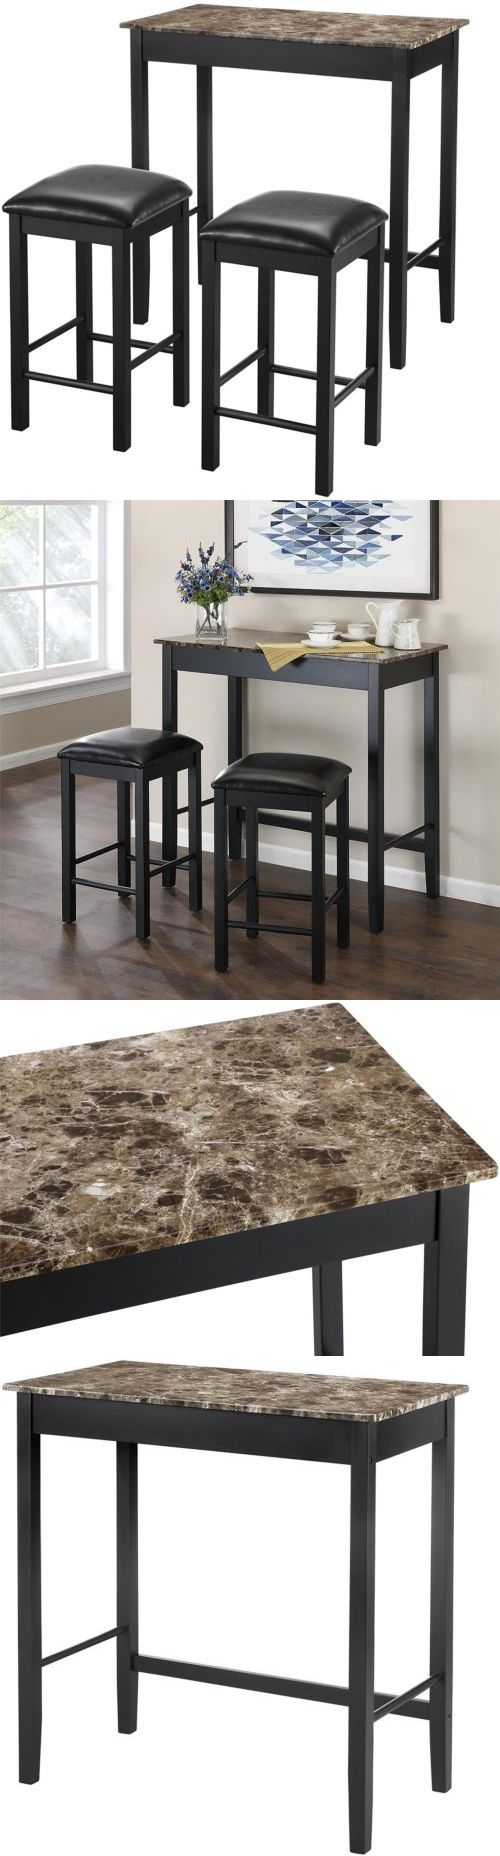 Home Pubs and Bars 115713: Dorel Living 3-Piece Devyn Faux Marble Pub Dining Set -> BUY IT NOW ONLY: $112.74 on eBay!